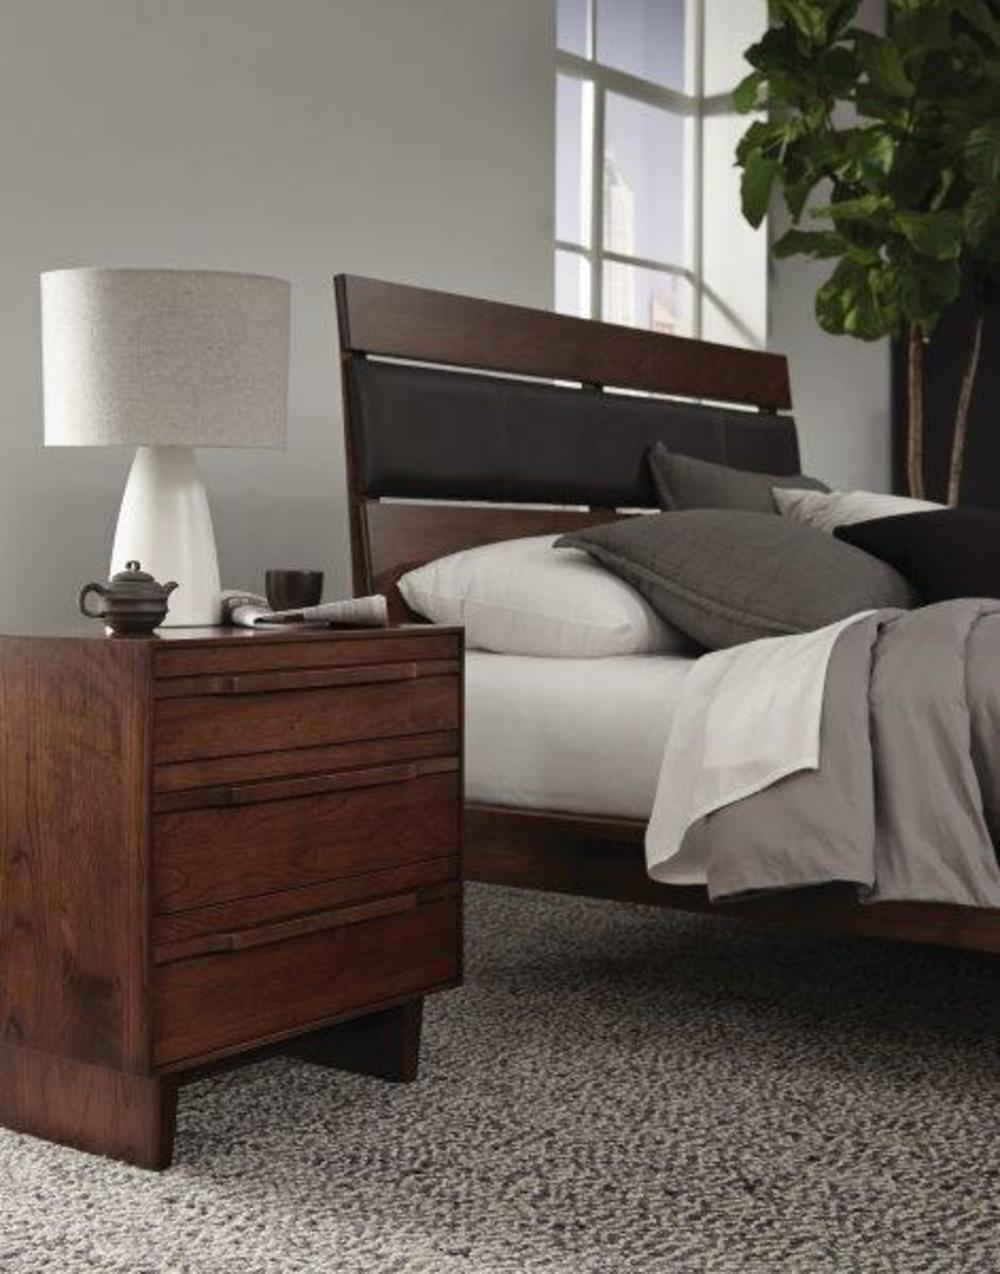 West Bros - Camber Upholstered Bed